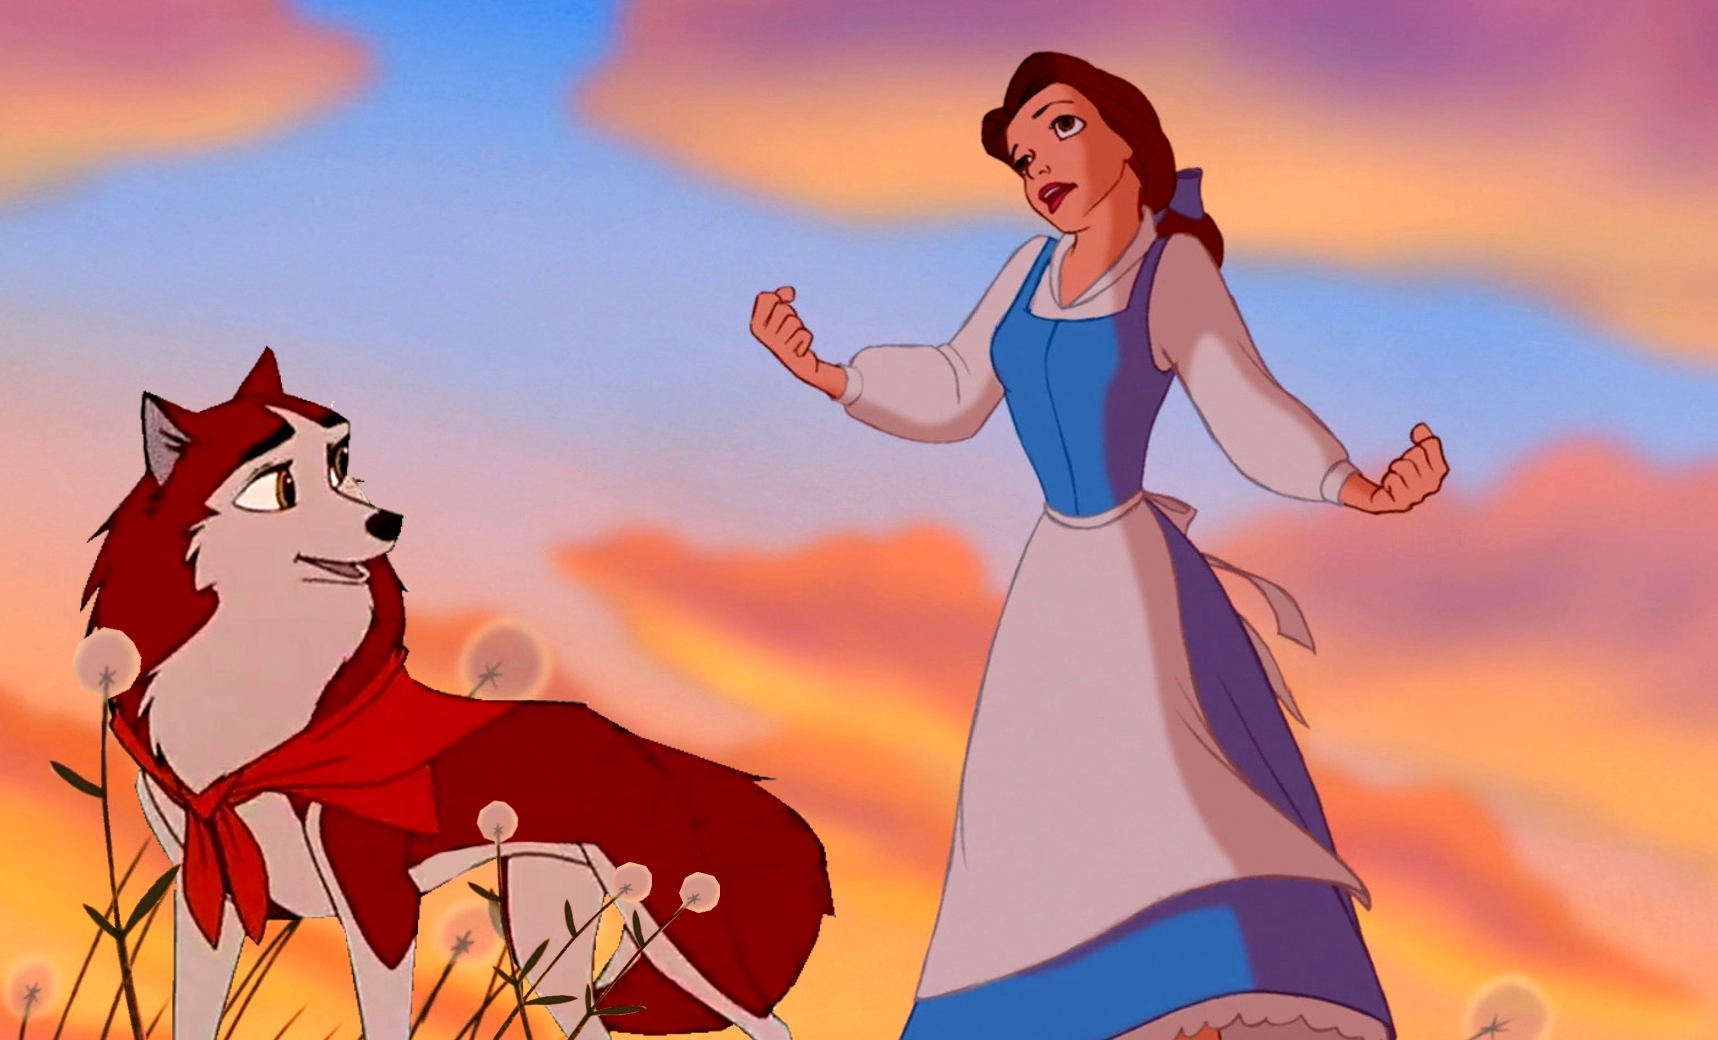 Belle and Jenna